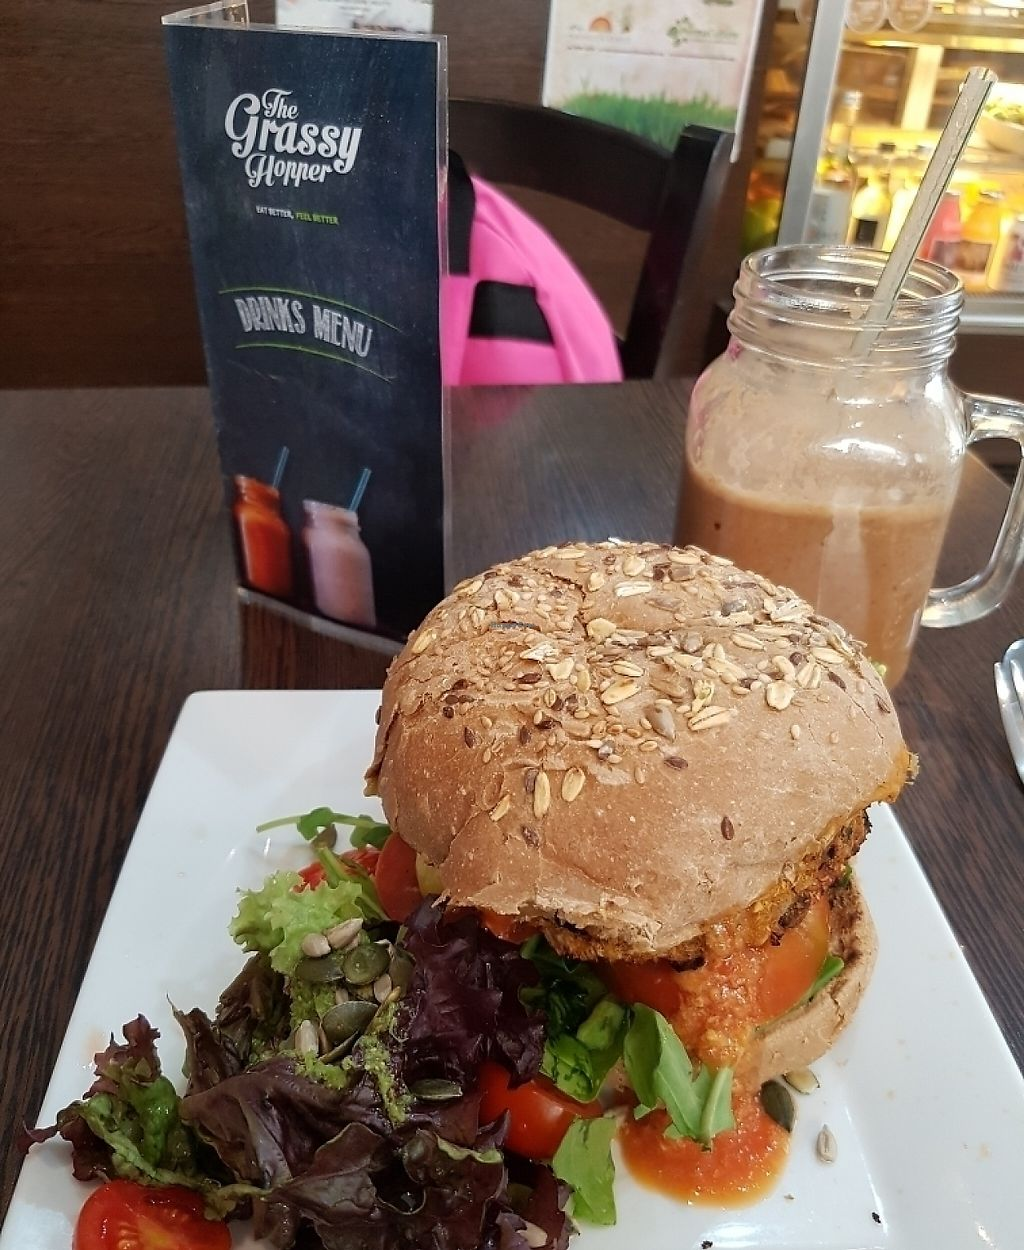 """Photo of CLOSED: The Grassy Hopper   by <a href=""""/members/profile/Rachaelm"""">Rachaelm</a> <br/>sweet potato /black bean burger  <br/> June 5, 2017  - <a href='/contact/abuse/image/59283/266016'>Report</a>"""